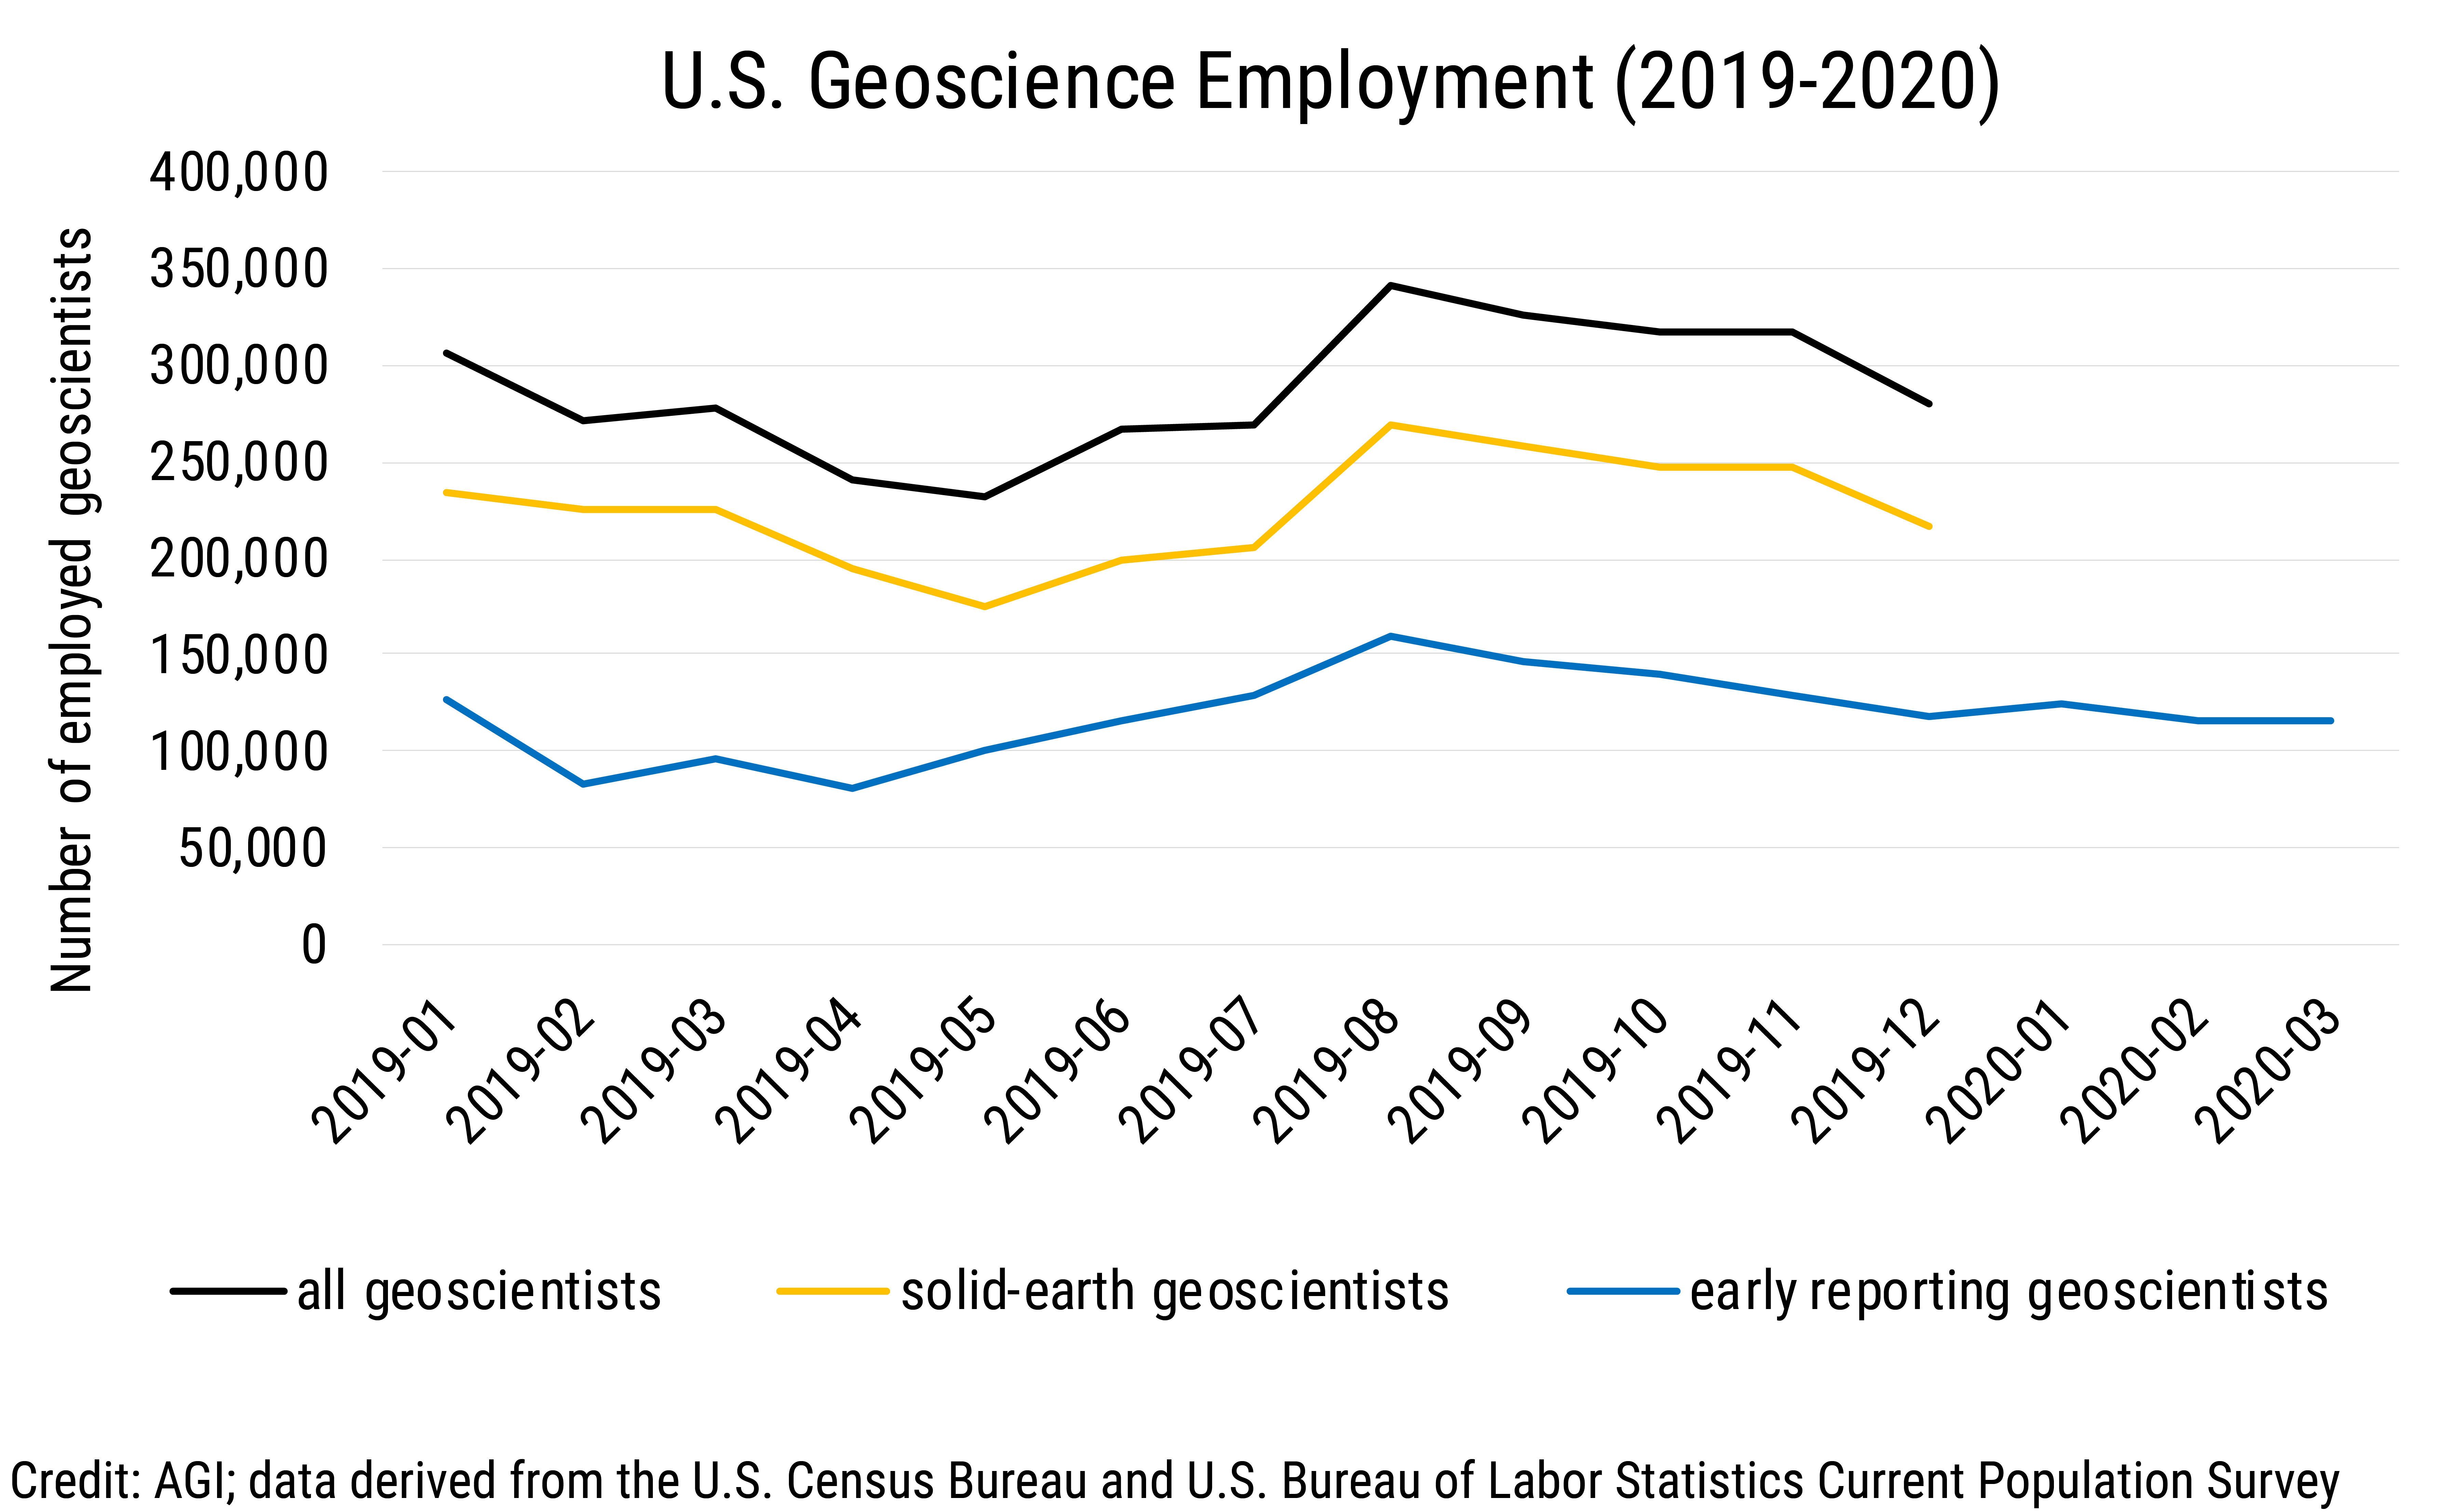 Data Brief 2020-004 chart 01: U.S. Geoscience Employment (2019-2020) (credit: AGI; data derived from the Current Population Survey)